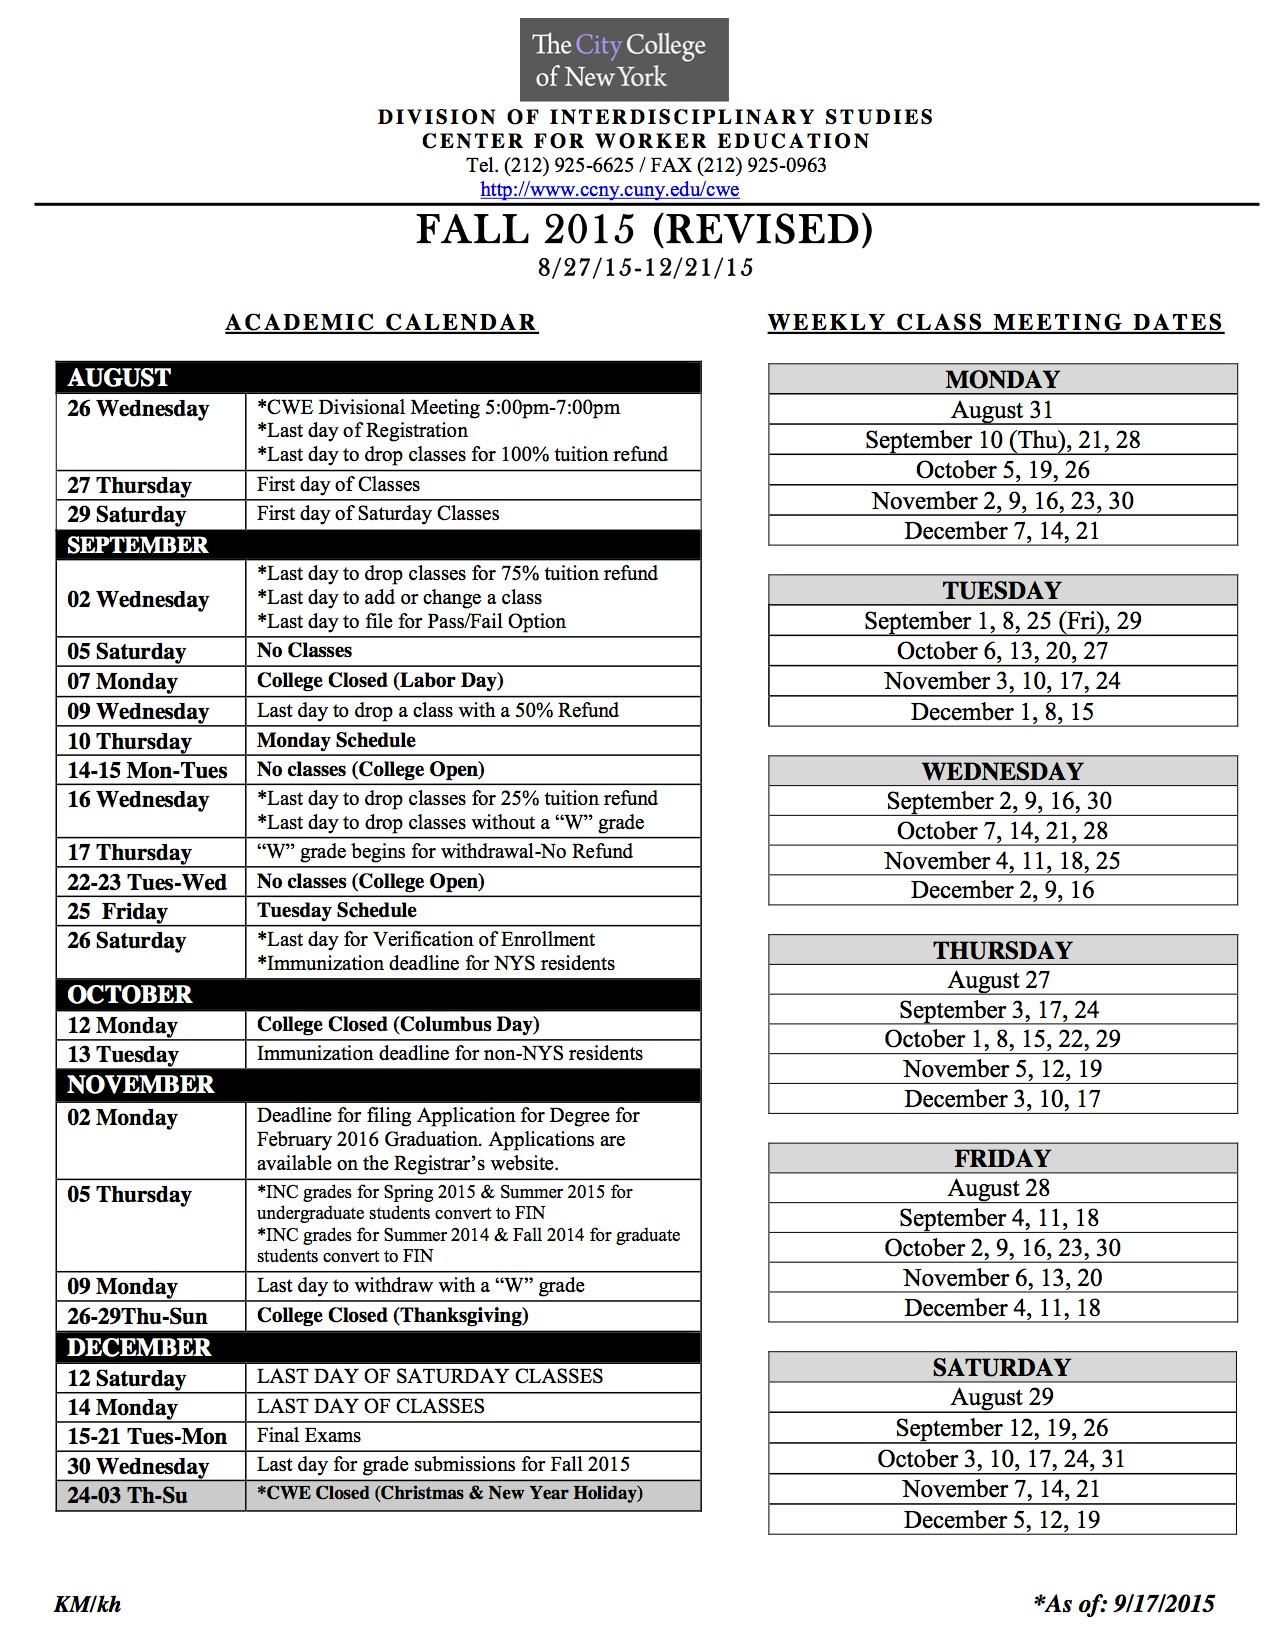 Academic Calendar | The City College of New York